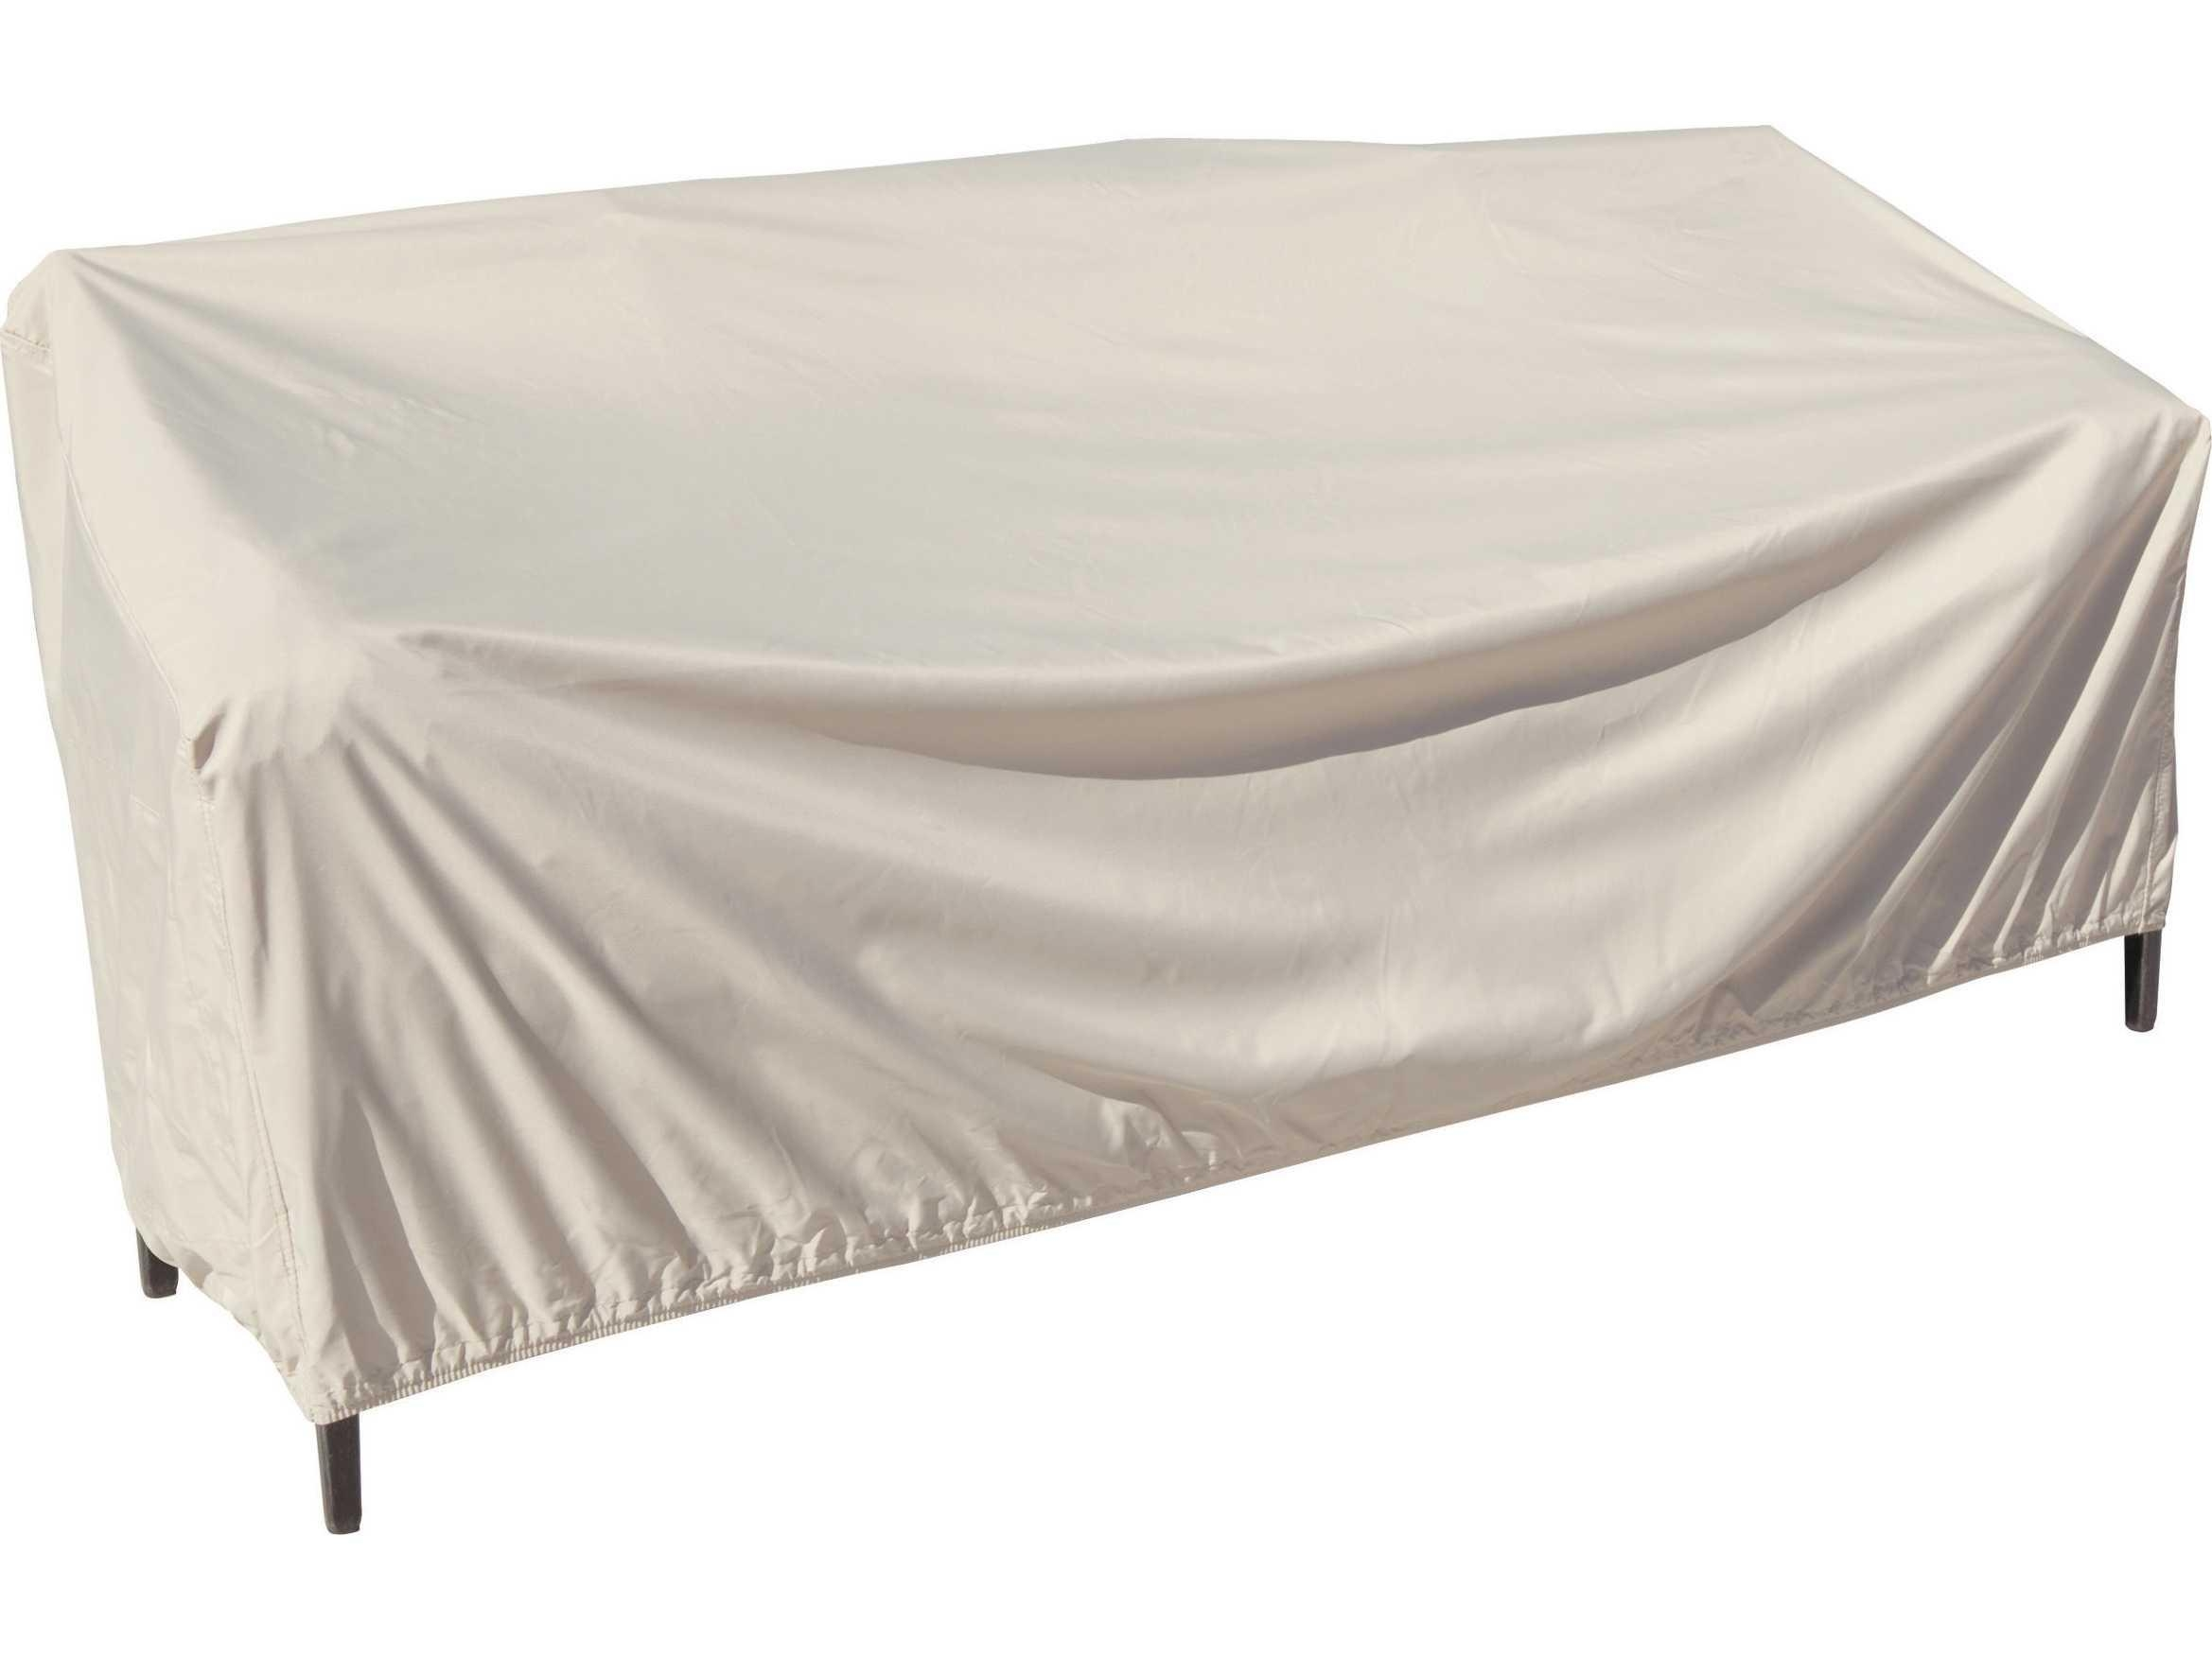 Treasure Garden X Large Sofa Cover | Cp243 Intended For Garden Sofa Covers (Image 22 of 22)